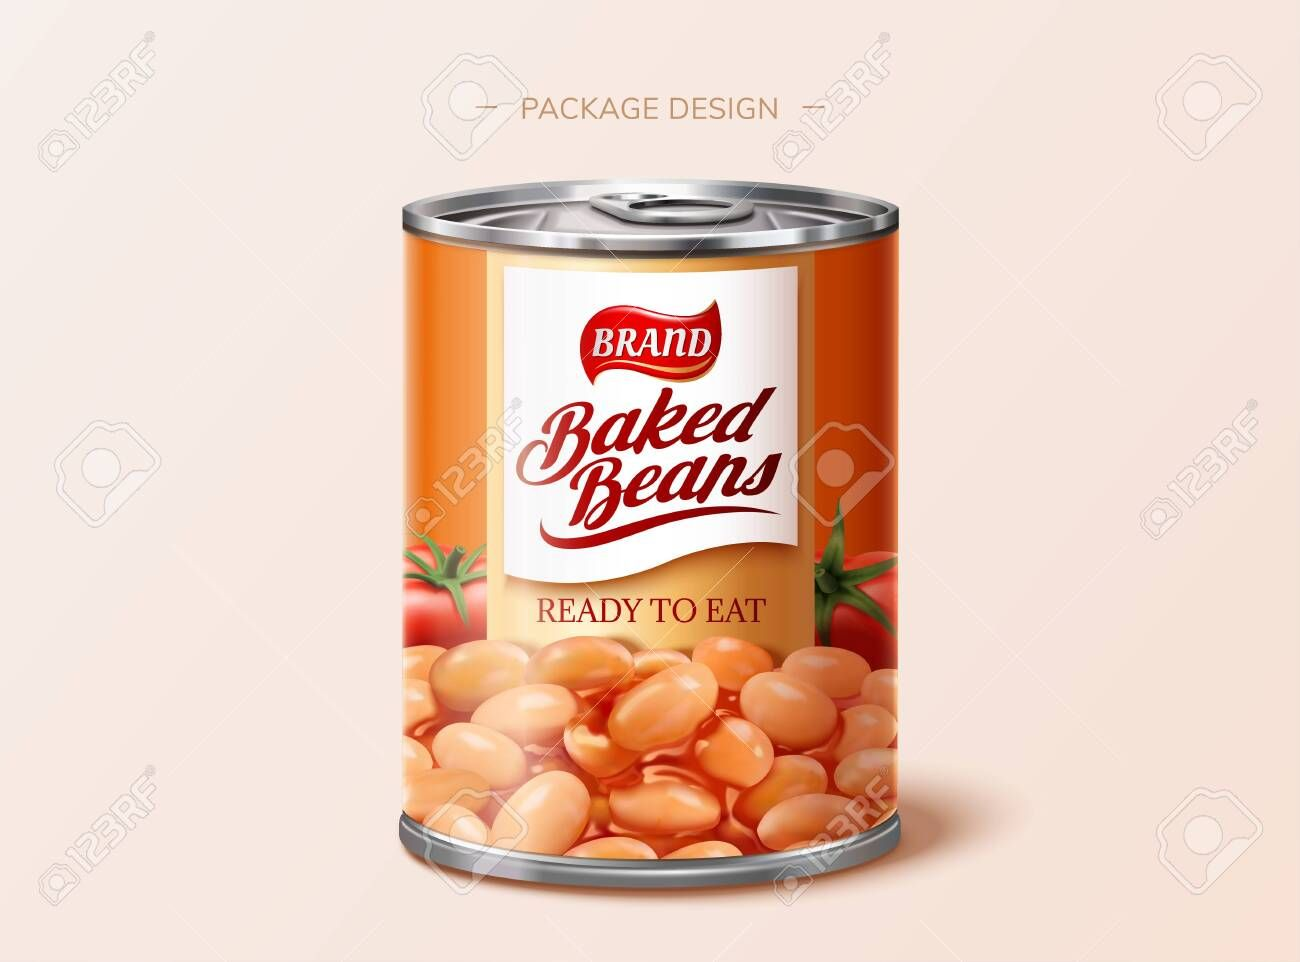 Baked Beans Tin Package Design In 3d Illustration Illustration Sponsored Tin Beans Baked Package Illustr Dog Food Recipes Baked Beans Food Animals